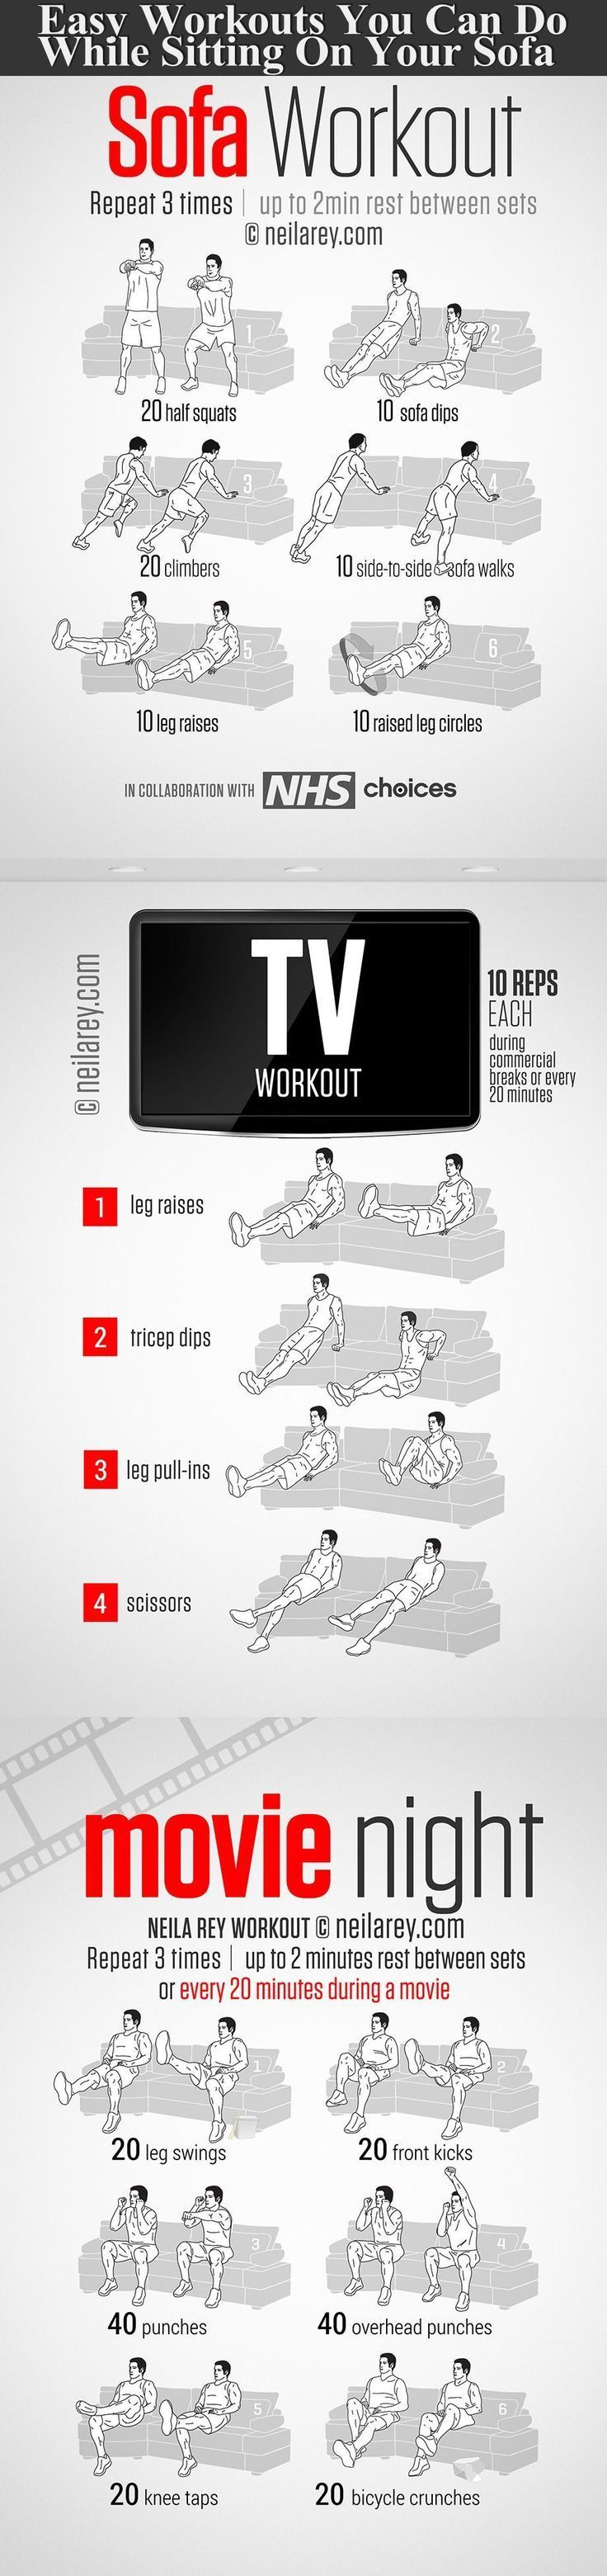 Easy Workouts You Can Do While Sitting On Your Sofa fitness exercise health heal...  Easy Workouts Y...